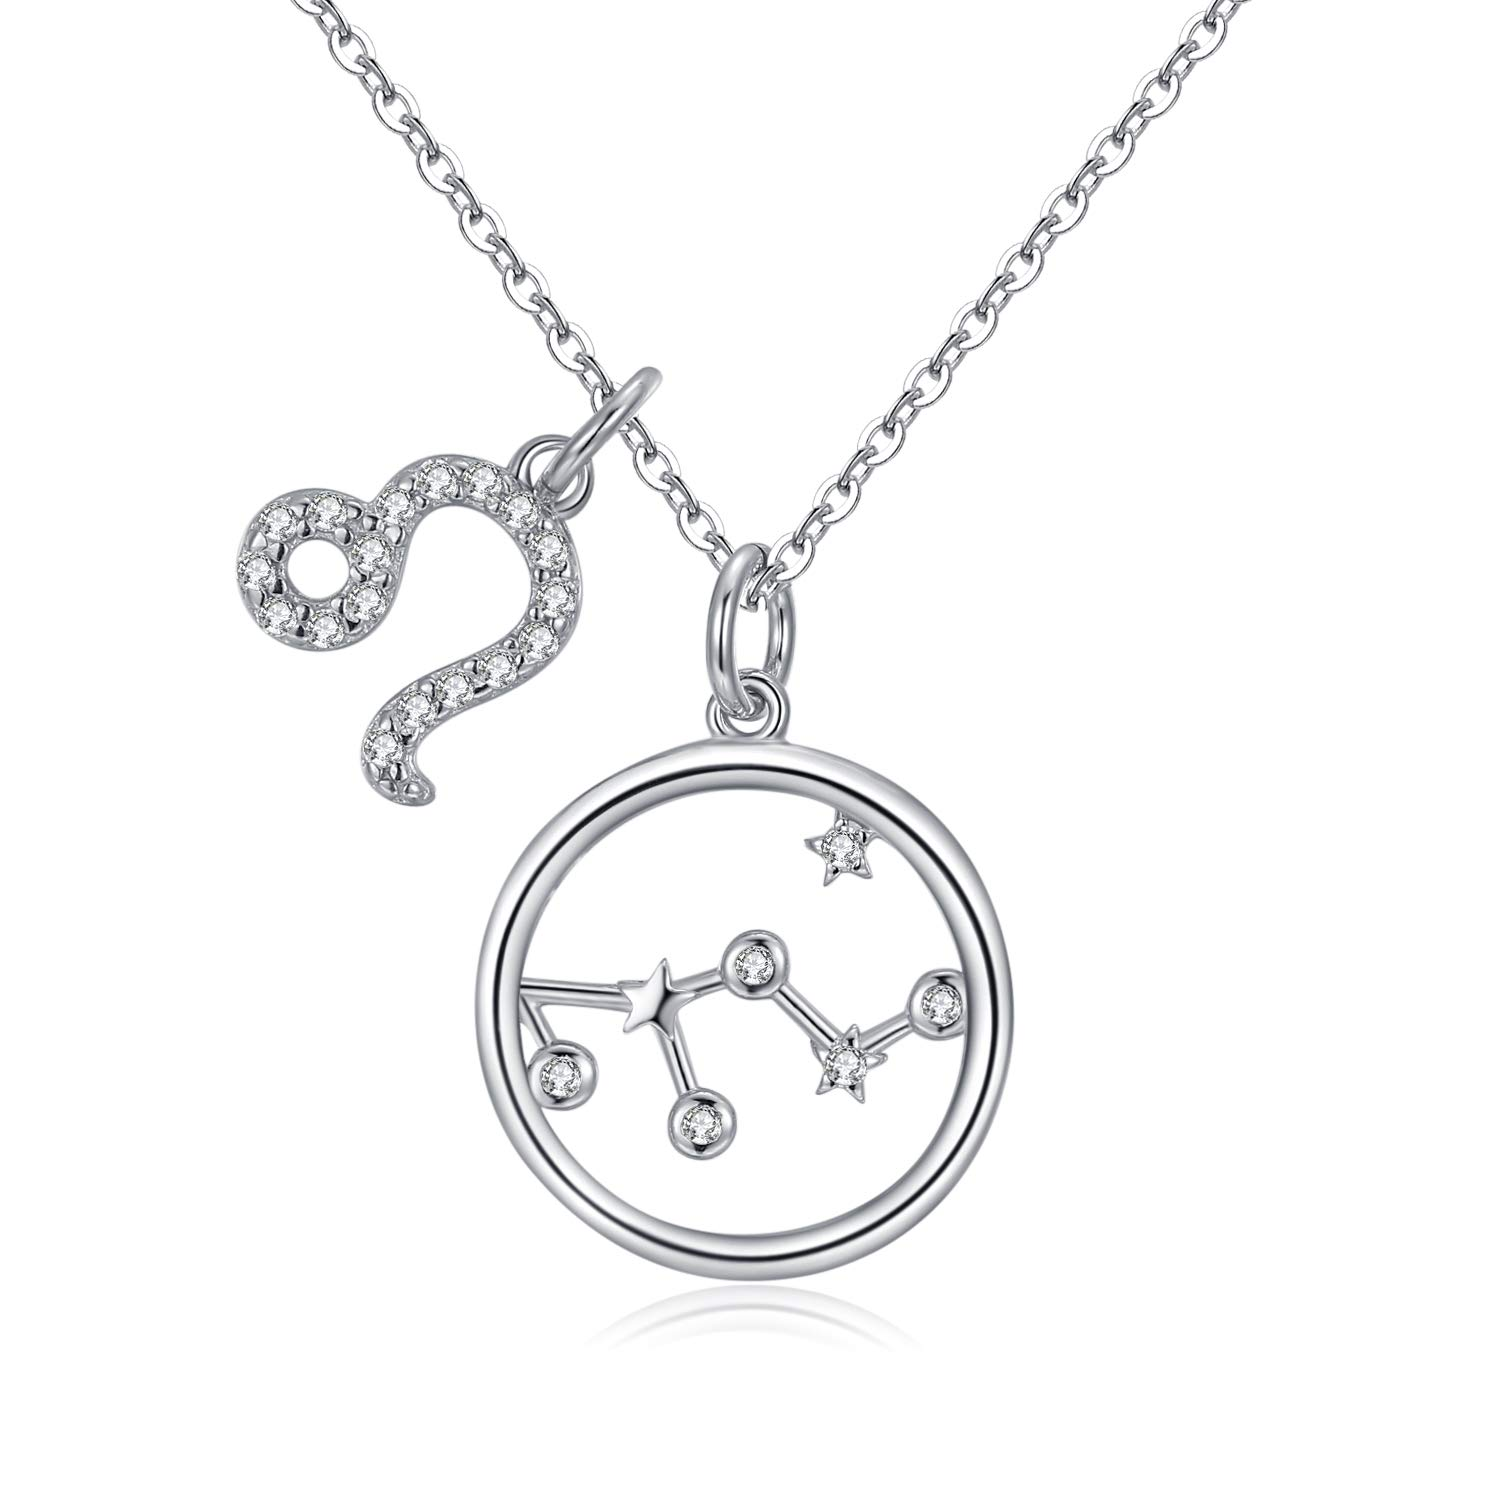 Qings 925 Sterling Silver Zodiac Pendant Necklace Star Cubic Zirconia 12 Constellation Horoscope Dainty Necklaces for Women Girls